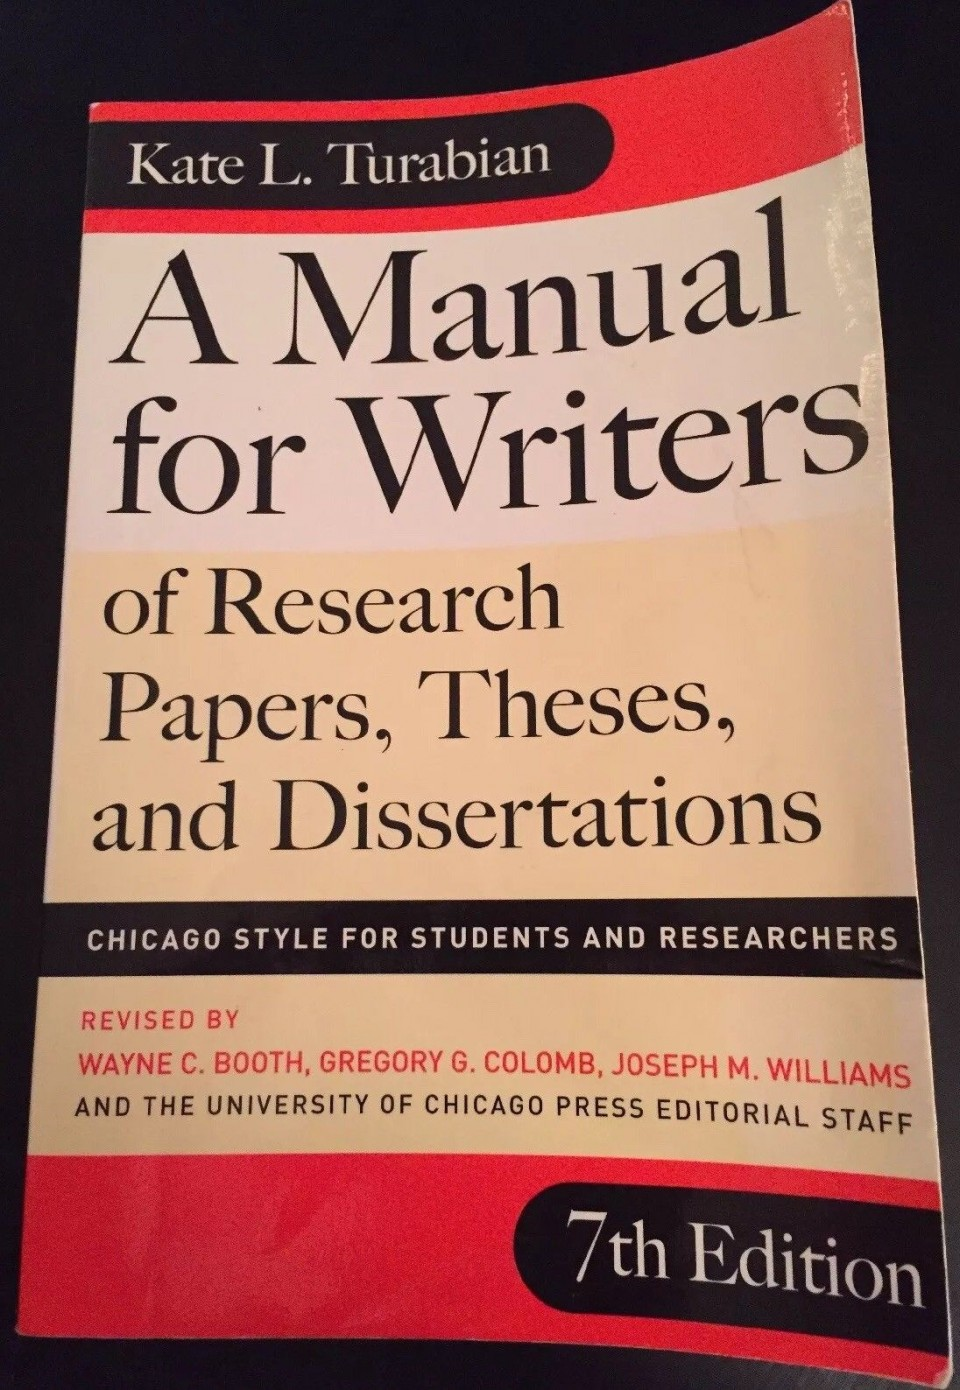 013 S L1600 Research Paper Manual For Writers Of Papers Theses And Sensational A Dissertations Ed. 8 8th Edition Ninth Pdf 960